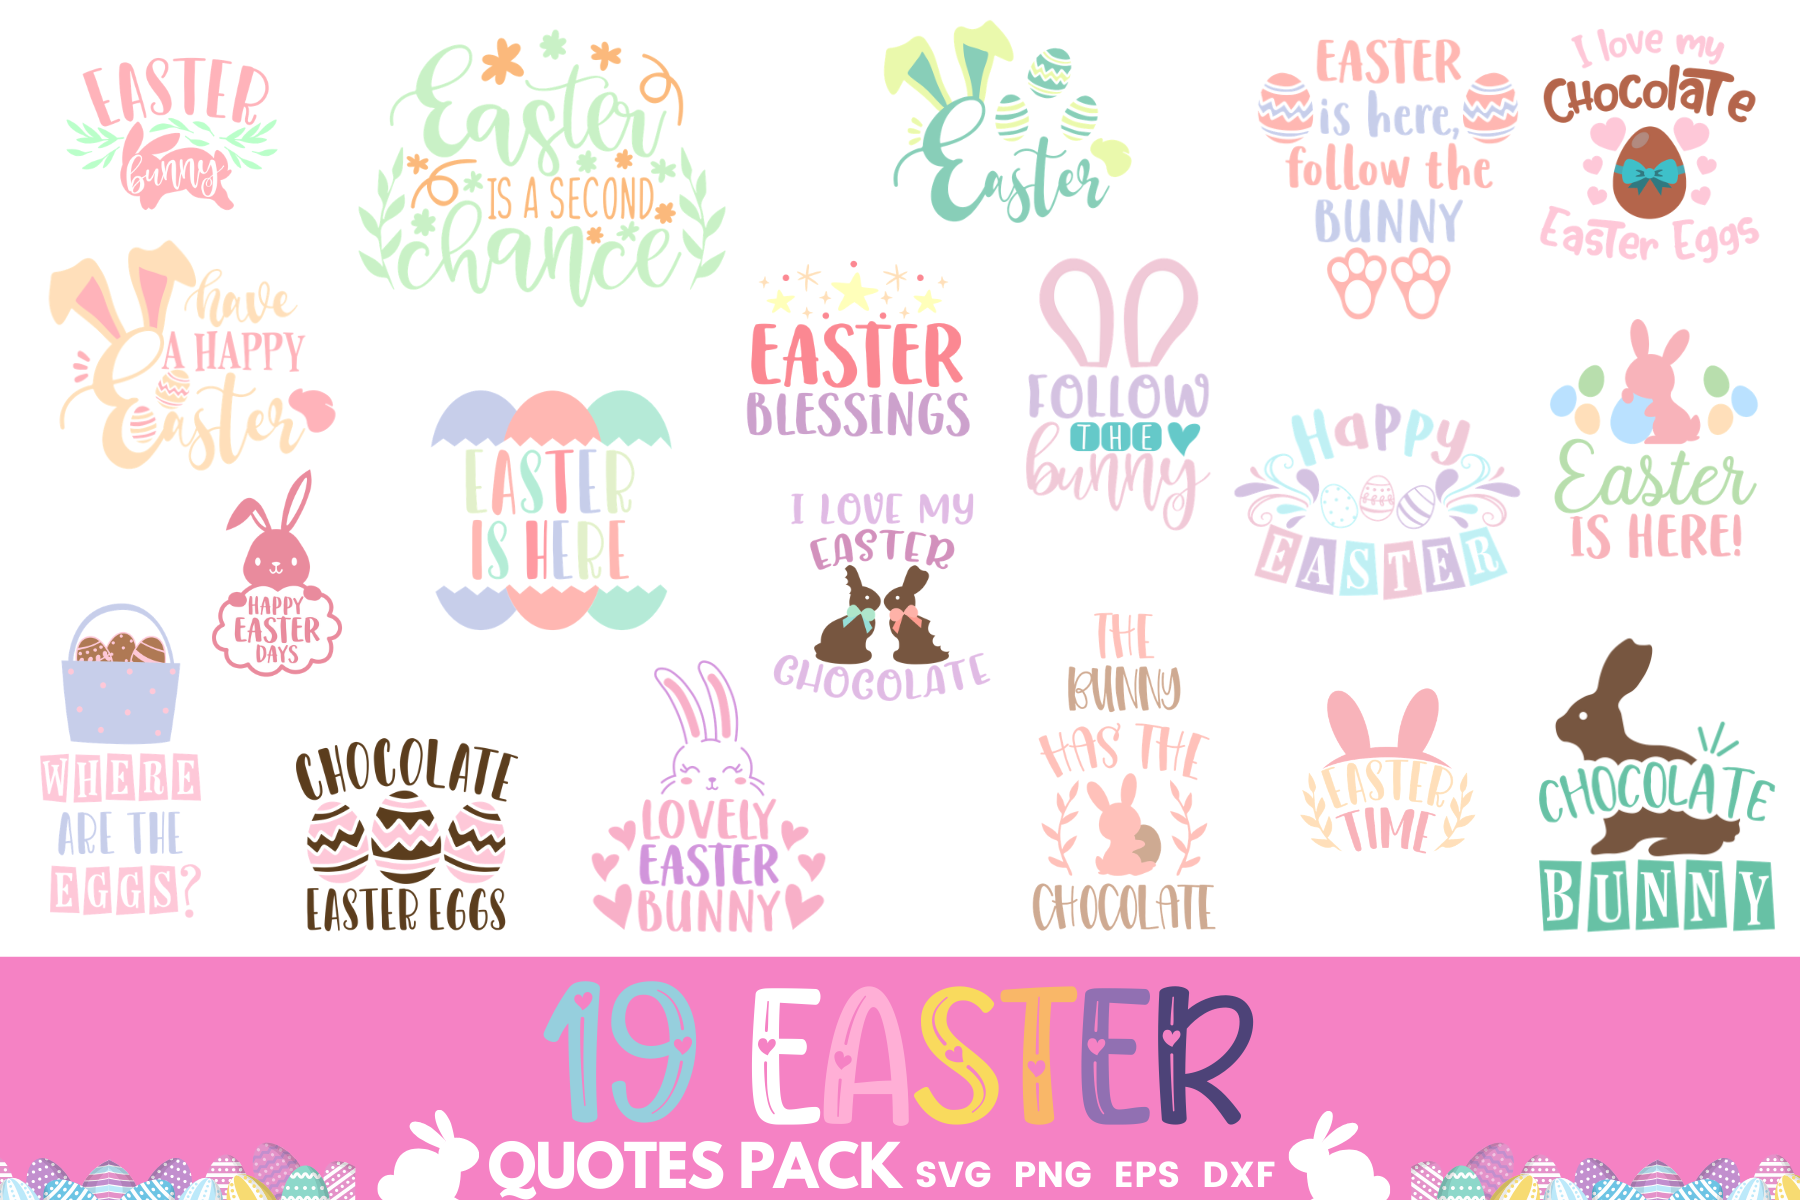 Download Free 19 Easter Quotes Pack Graphic By Graphipedia Creative Fabrica for Cricut Explore, Silhouette and other cutting machines.